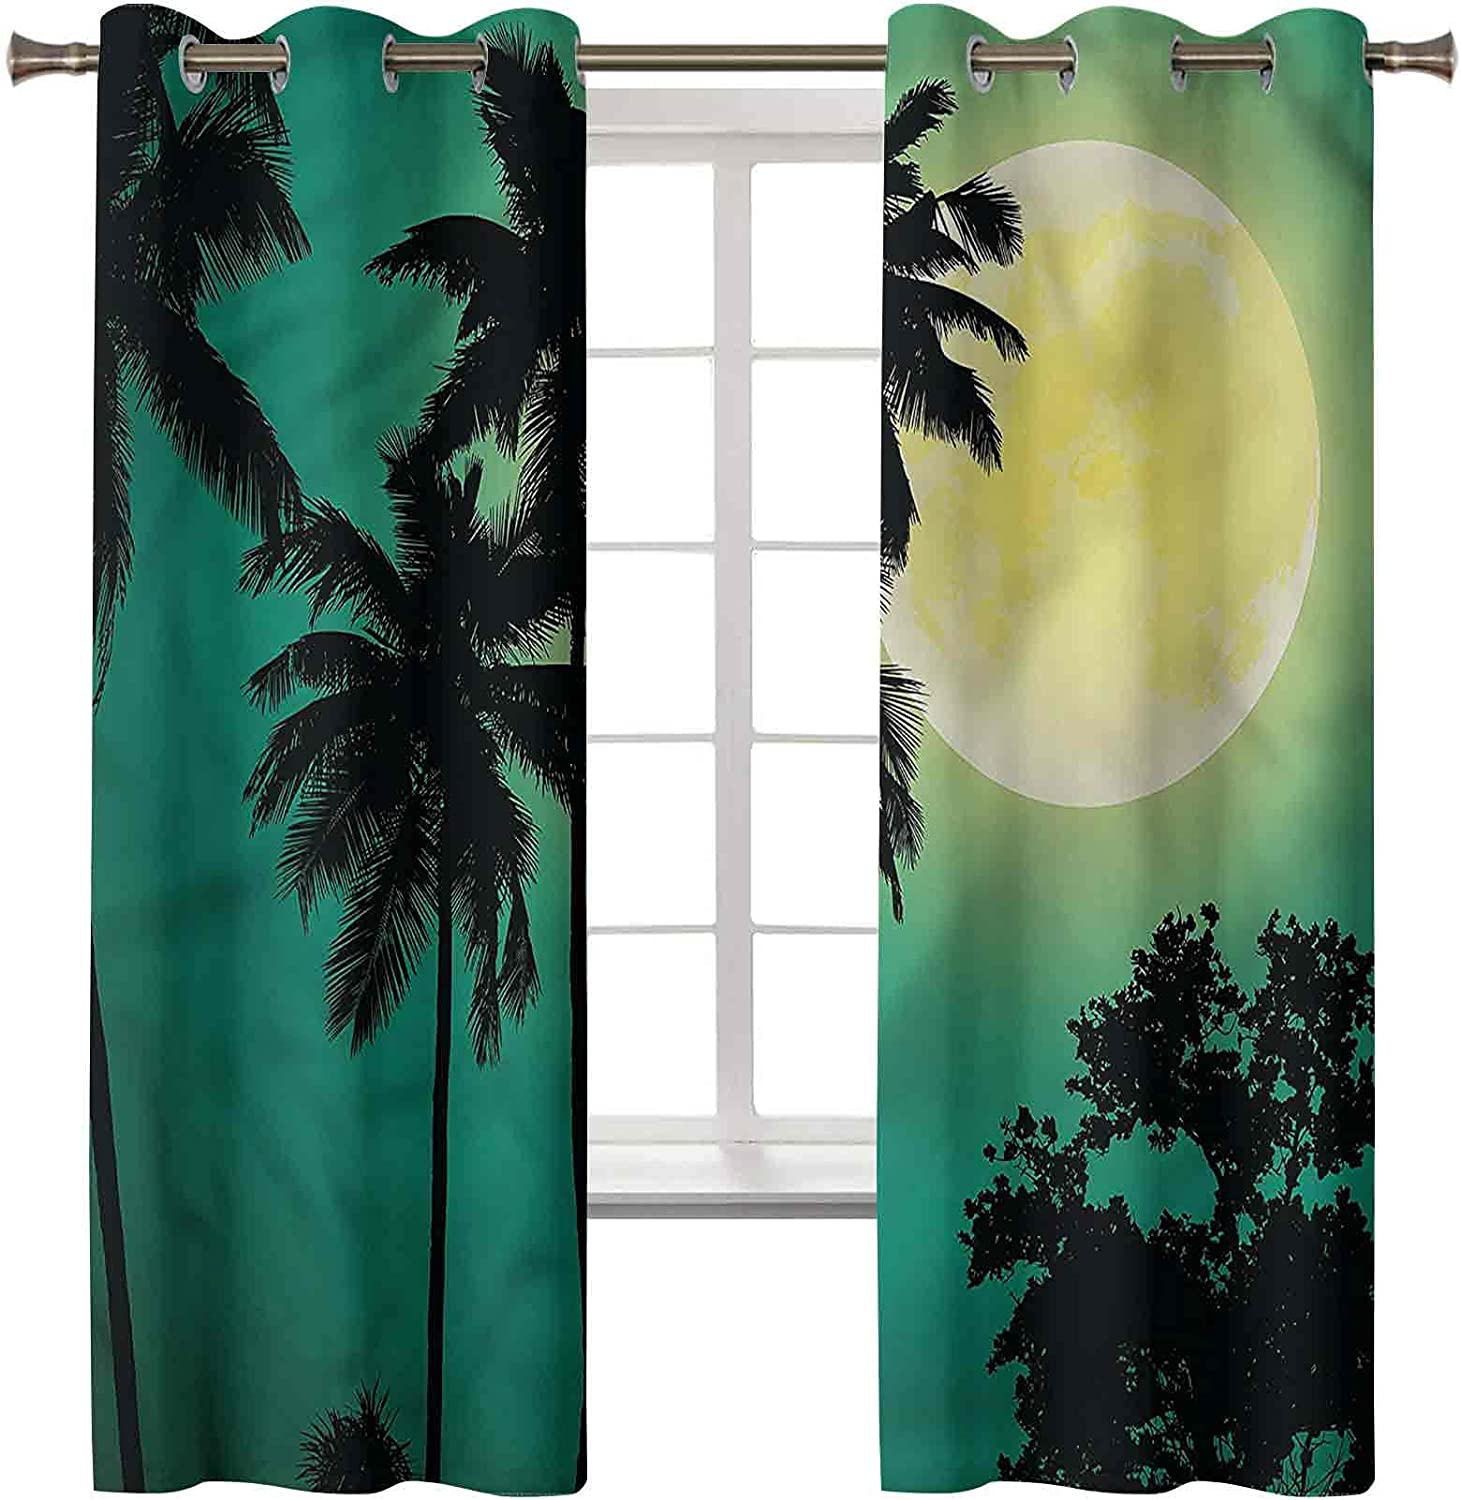 Denver Mall Blackout Curtains for Bedroom Overseas parallel import regular item Grommet Palm Insulated Tr Thermal